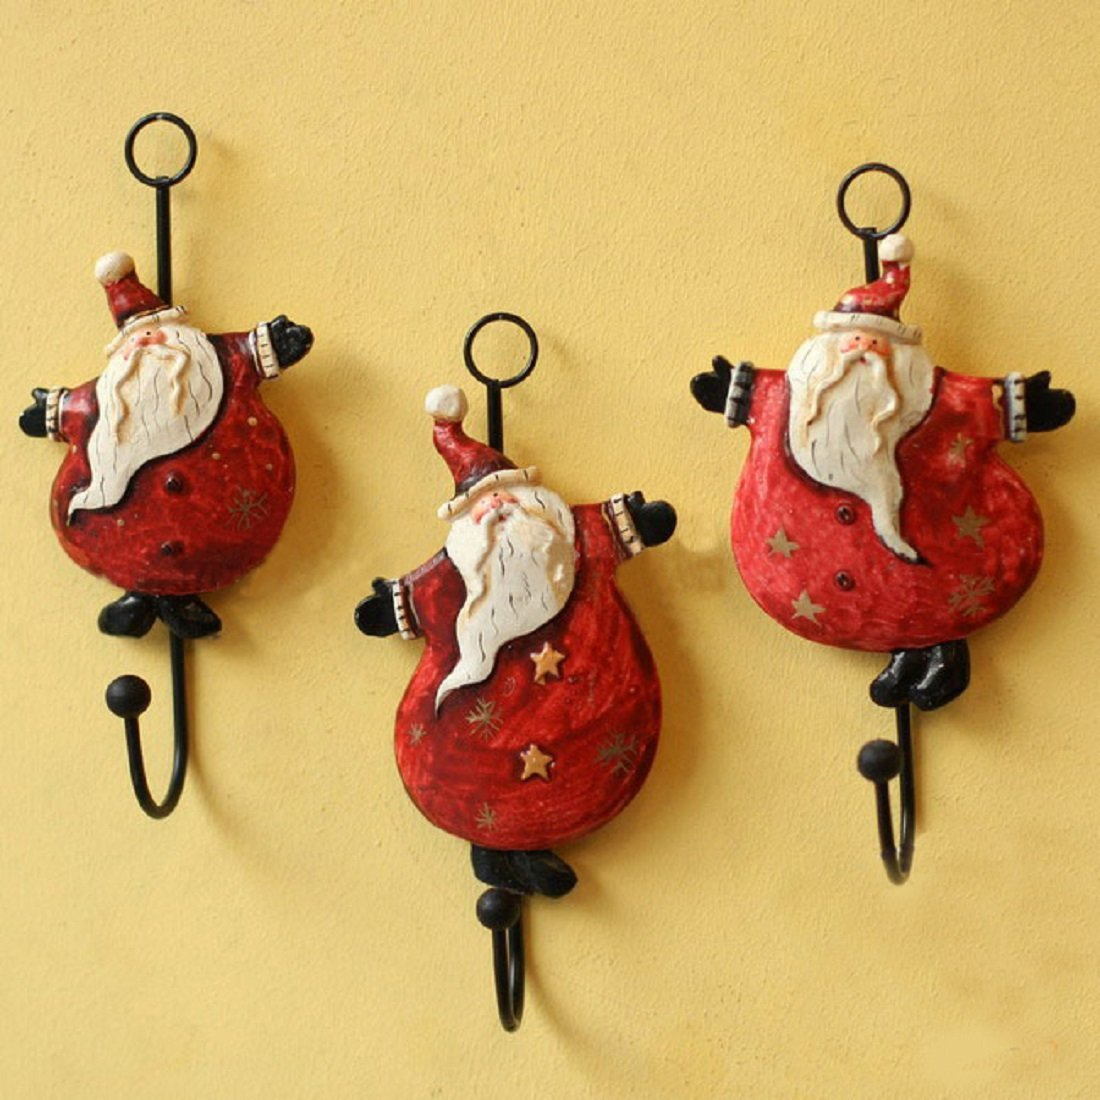 Cheap Creative Coat Hooks, find Creative Coat Hooks deals on line at ...